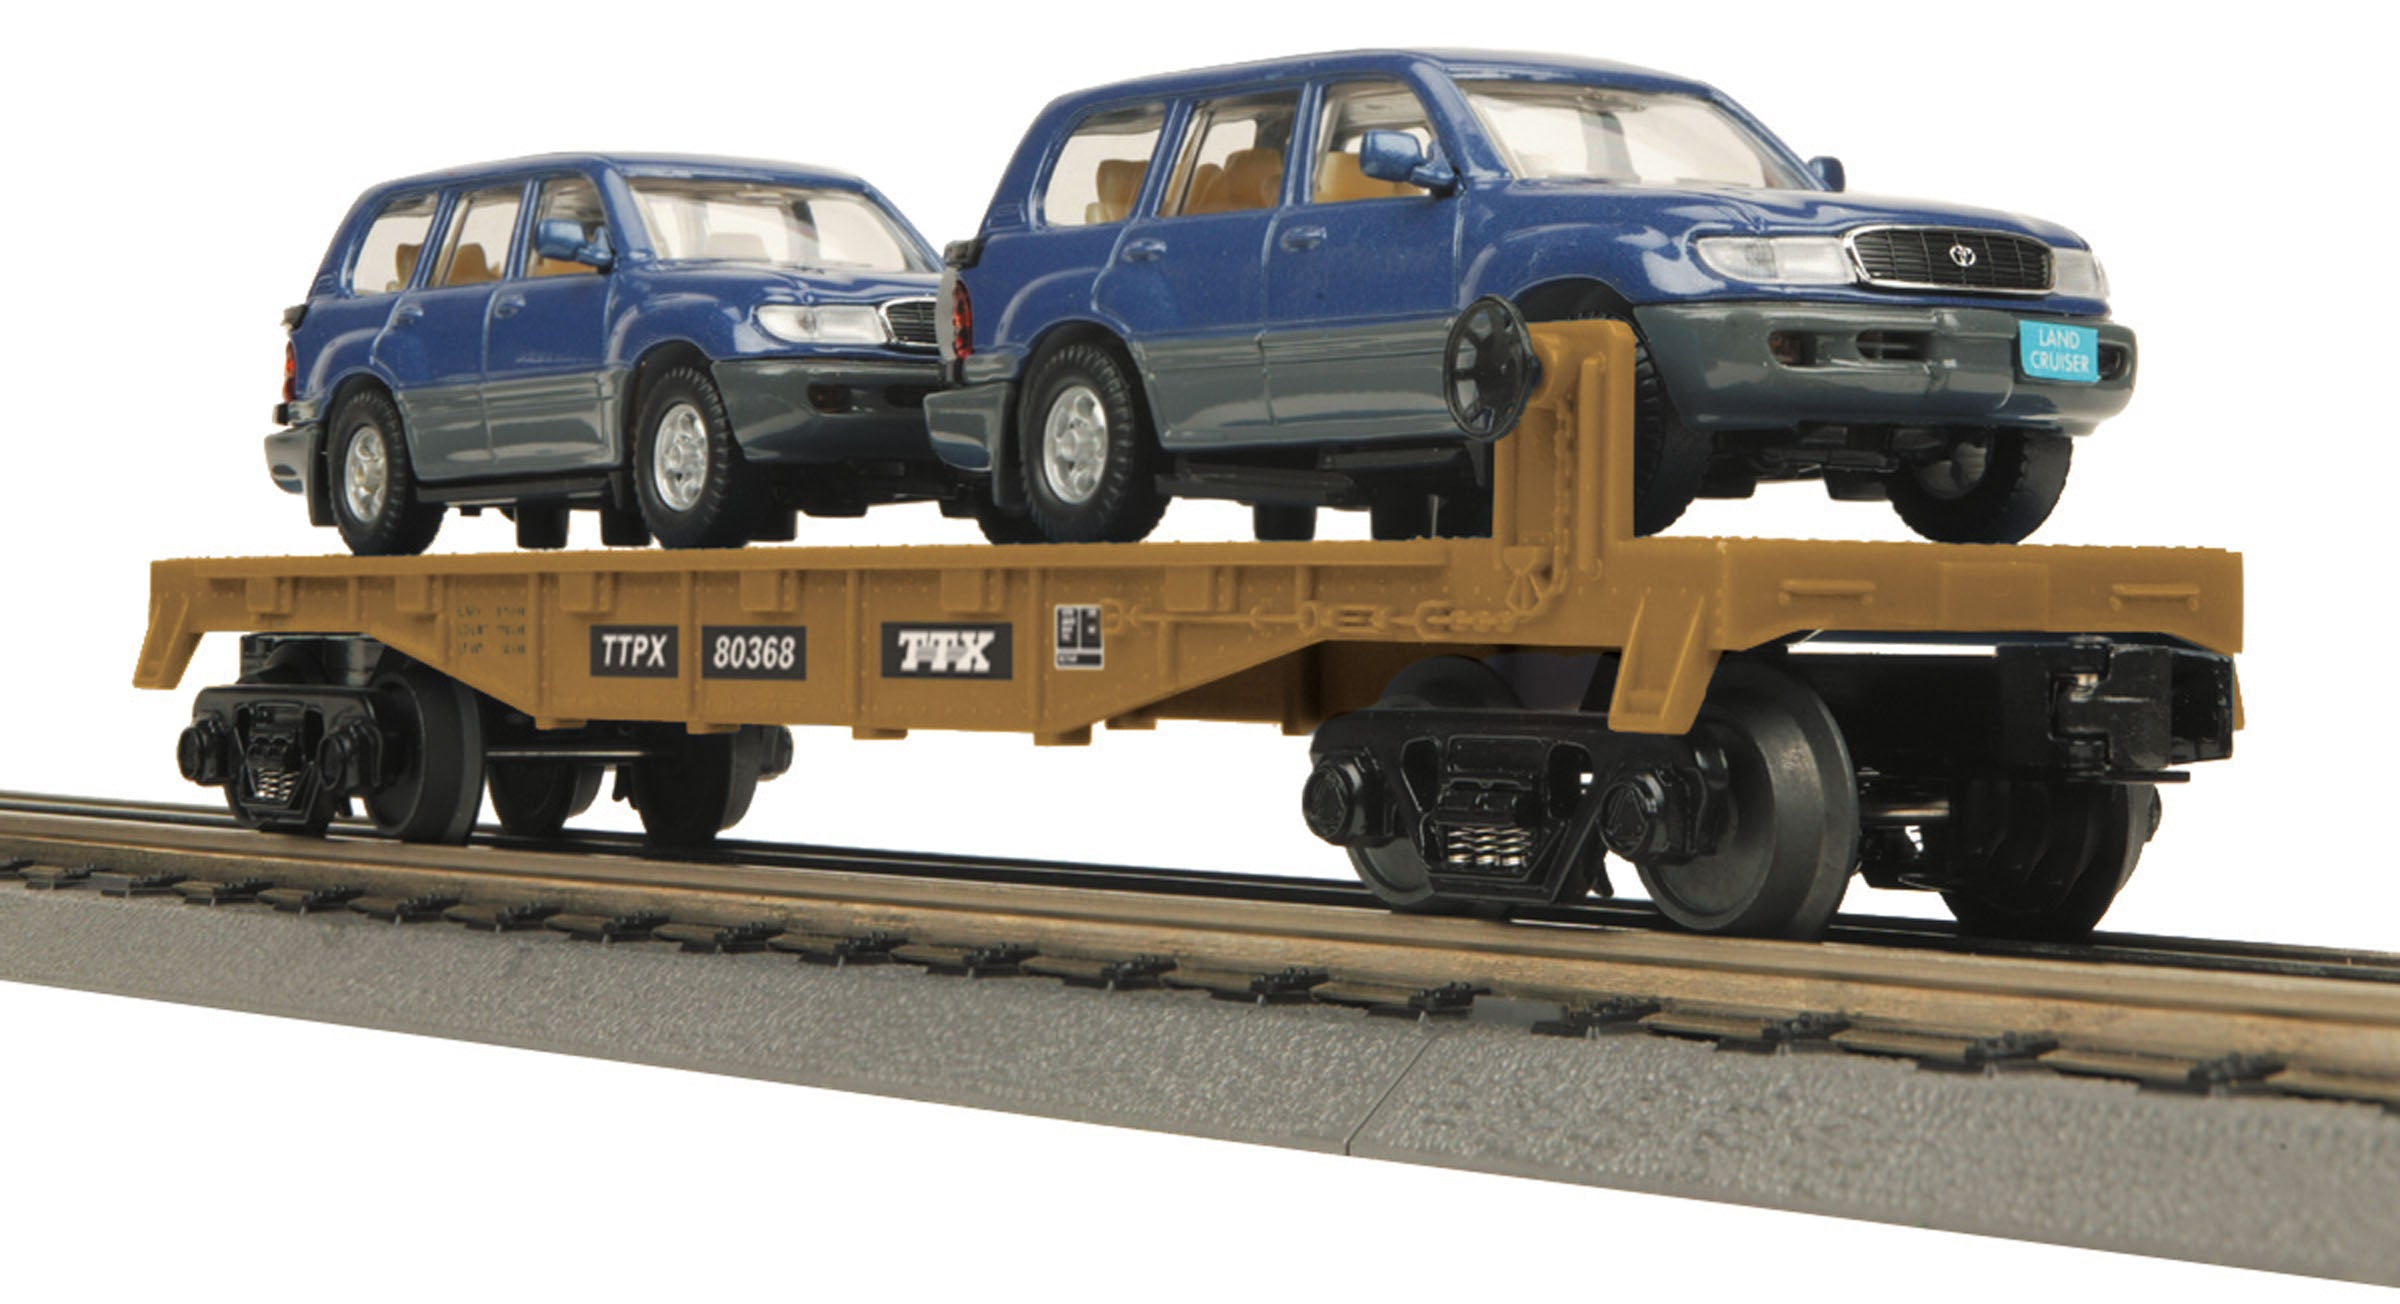 MTH #30-76300 Flat Car w/2 Toyota Land Cruiser VX.R Auto Loads